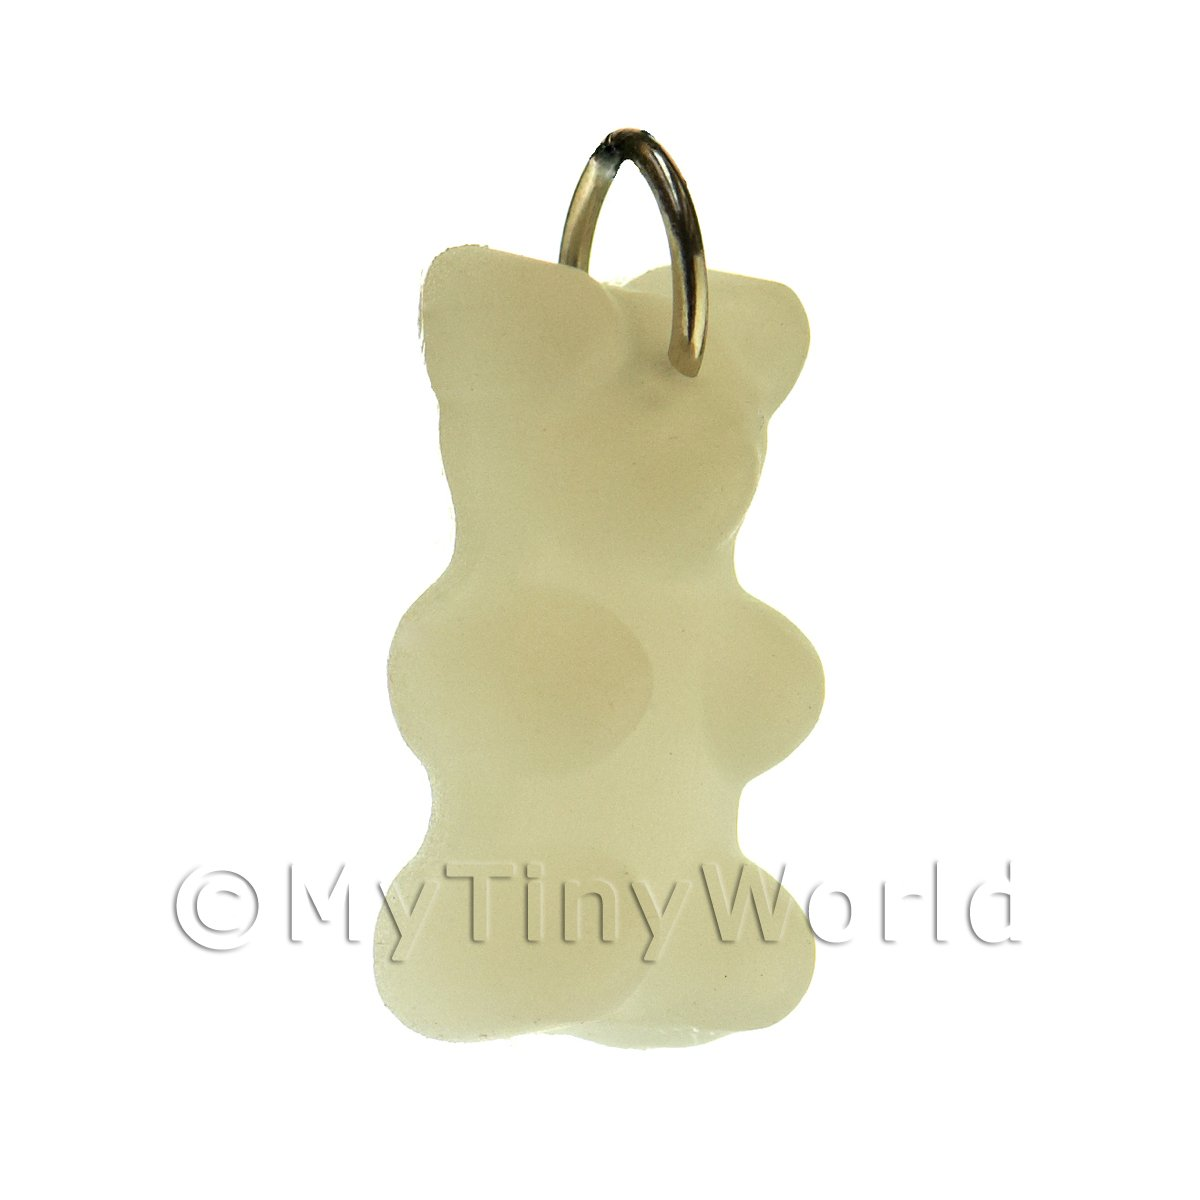 Translucent White Jelly Bear Charm